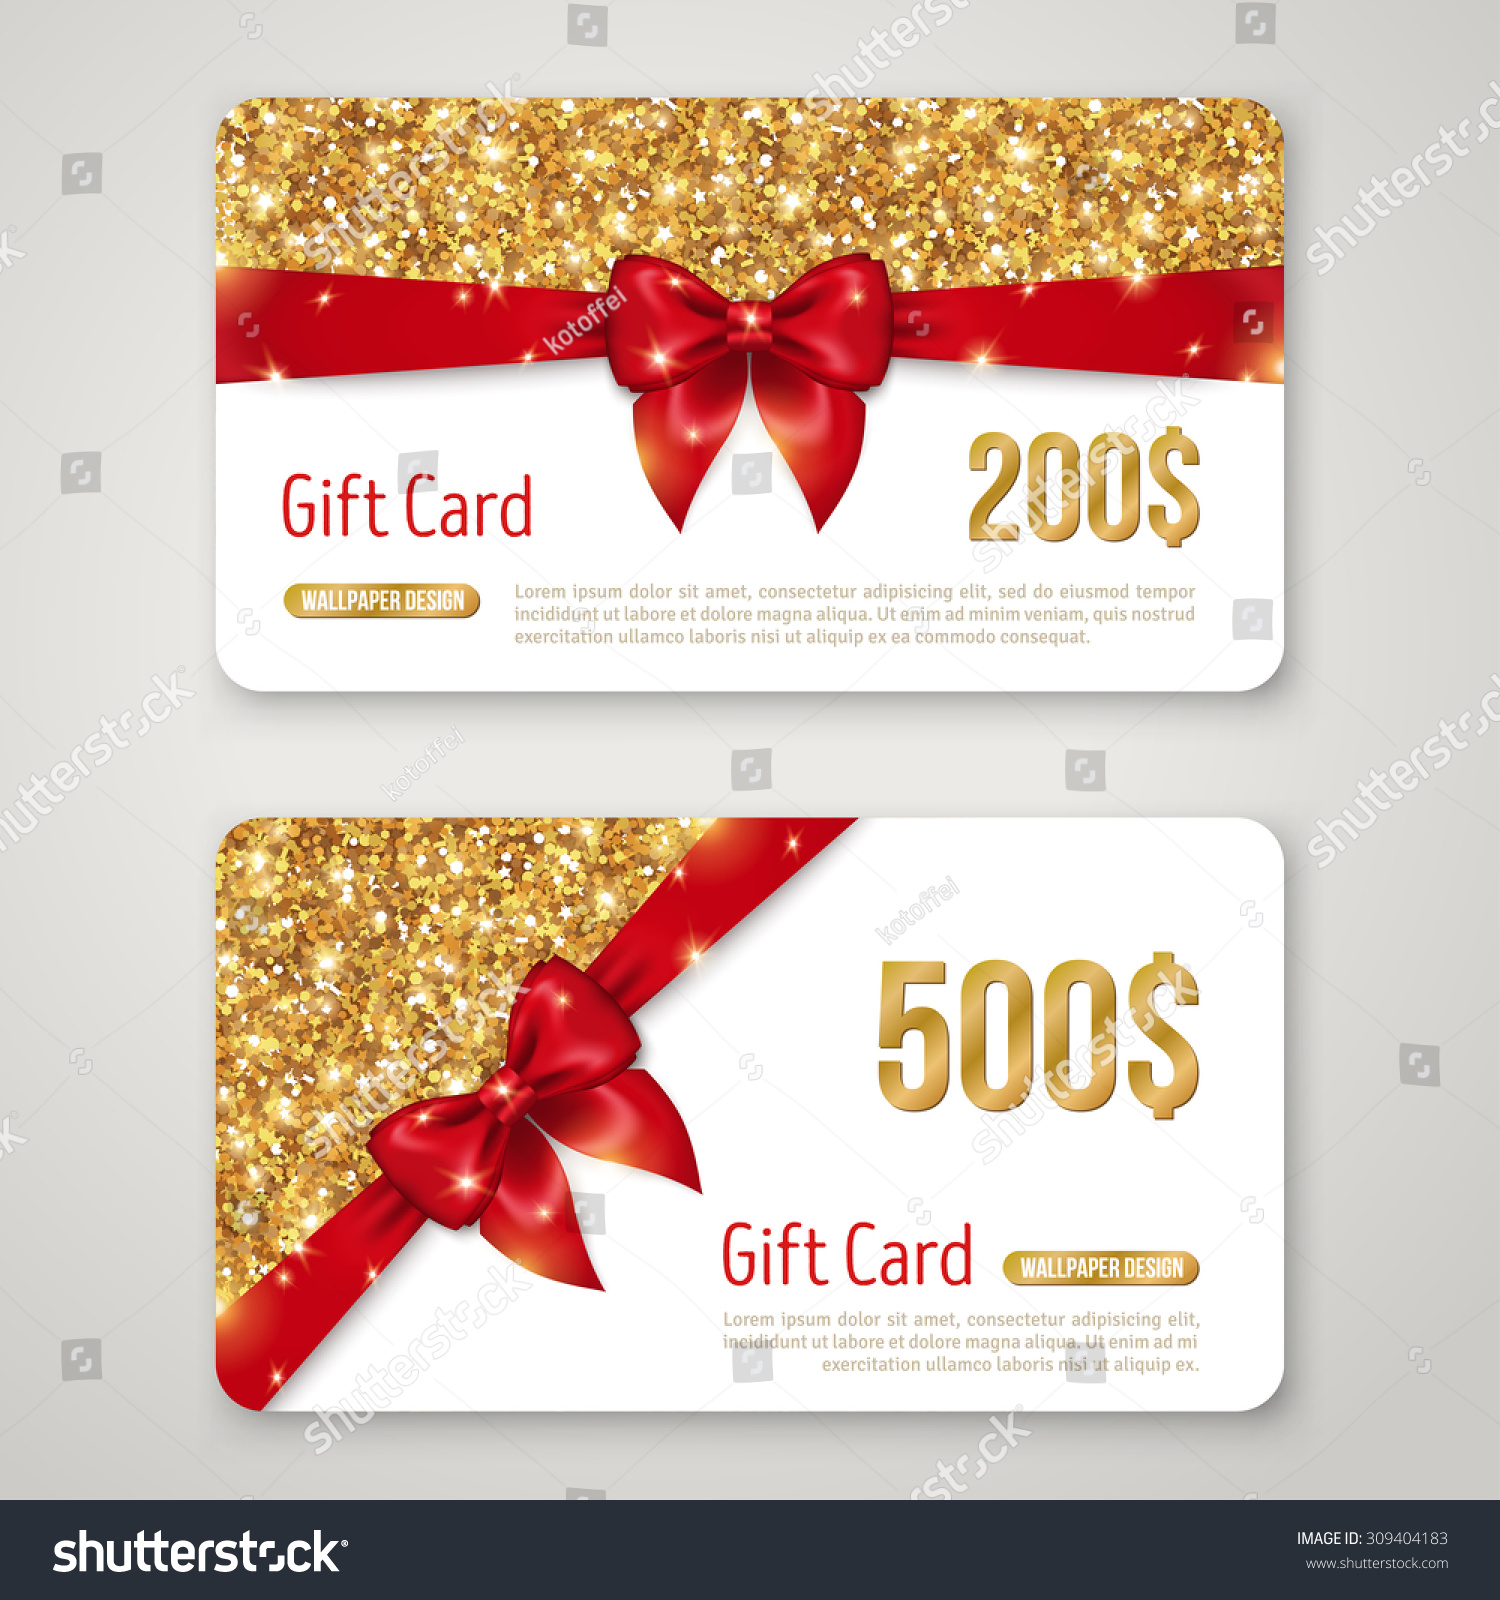 gift card design gold glitter texture stock vector  gift card design gold glitter texture and red bow invitation decorative card template